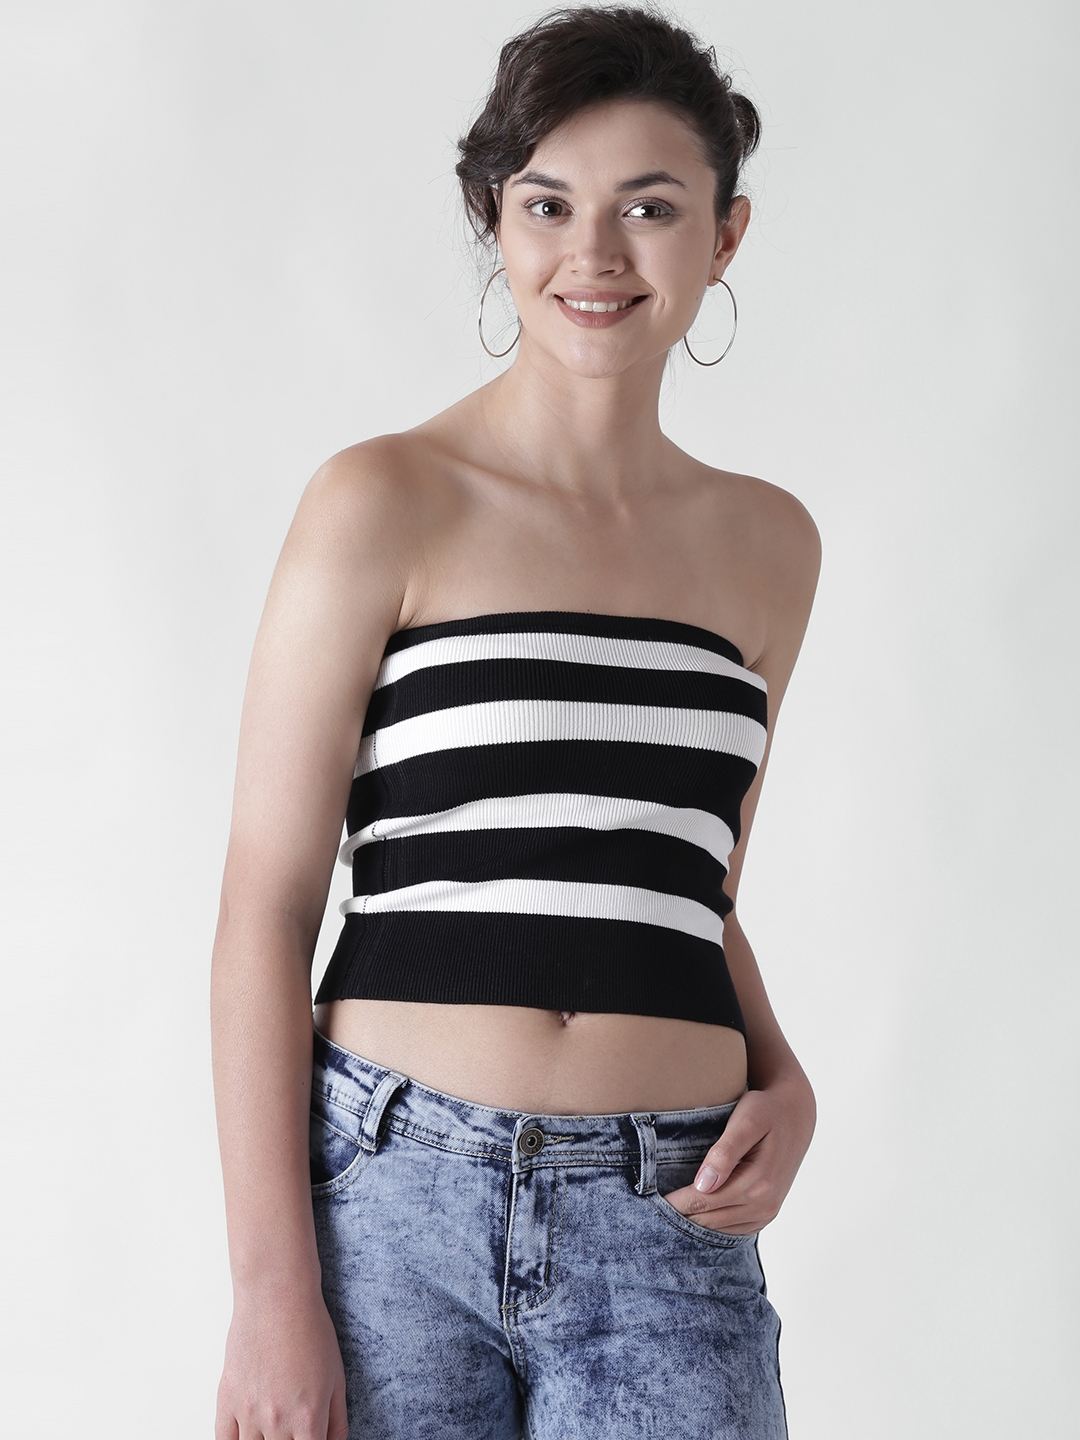 19d9f2ca564 Buy FOREVER 21 Women Black   White Striped Crop Tube Top - Tops for ...